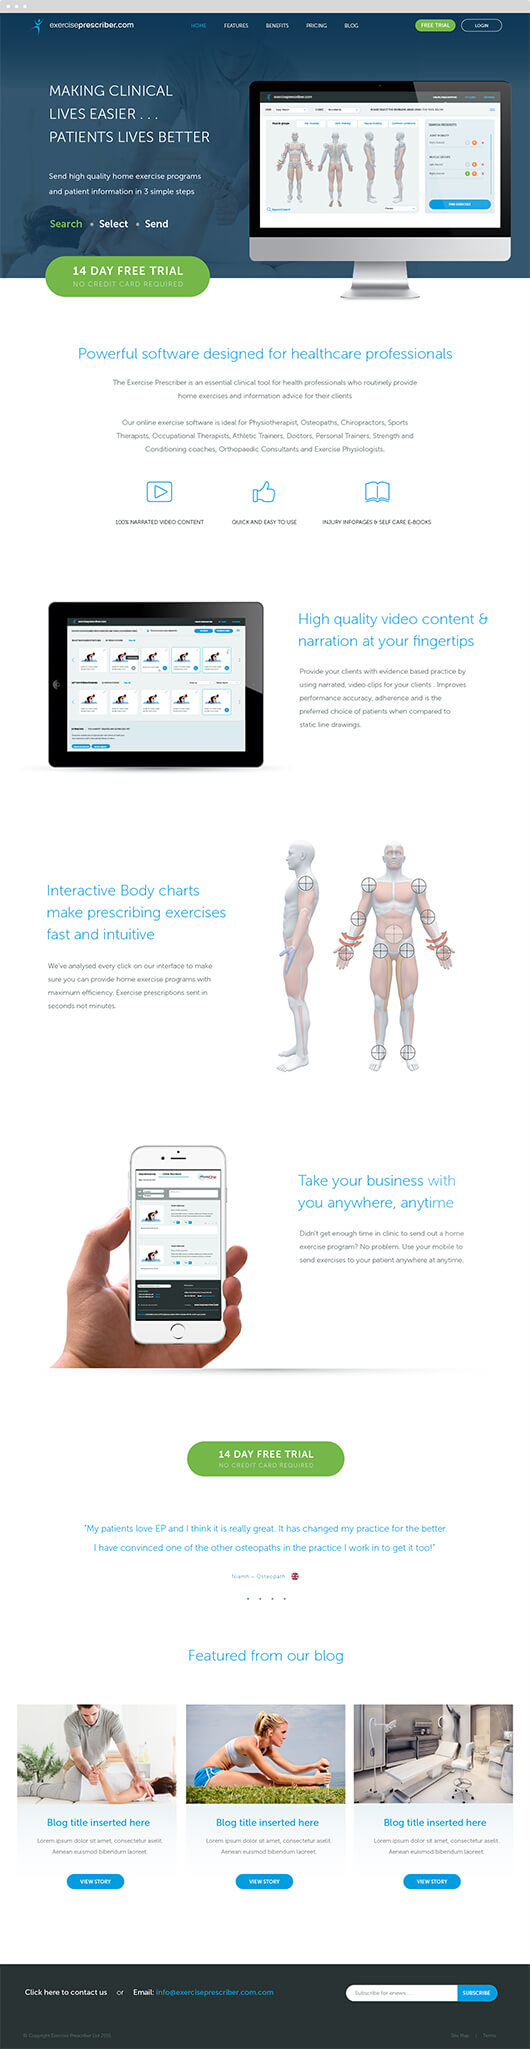 exercise web page design